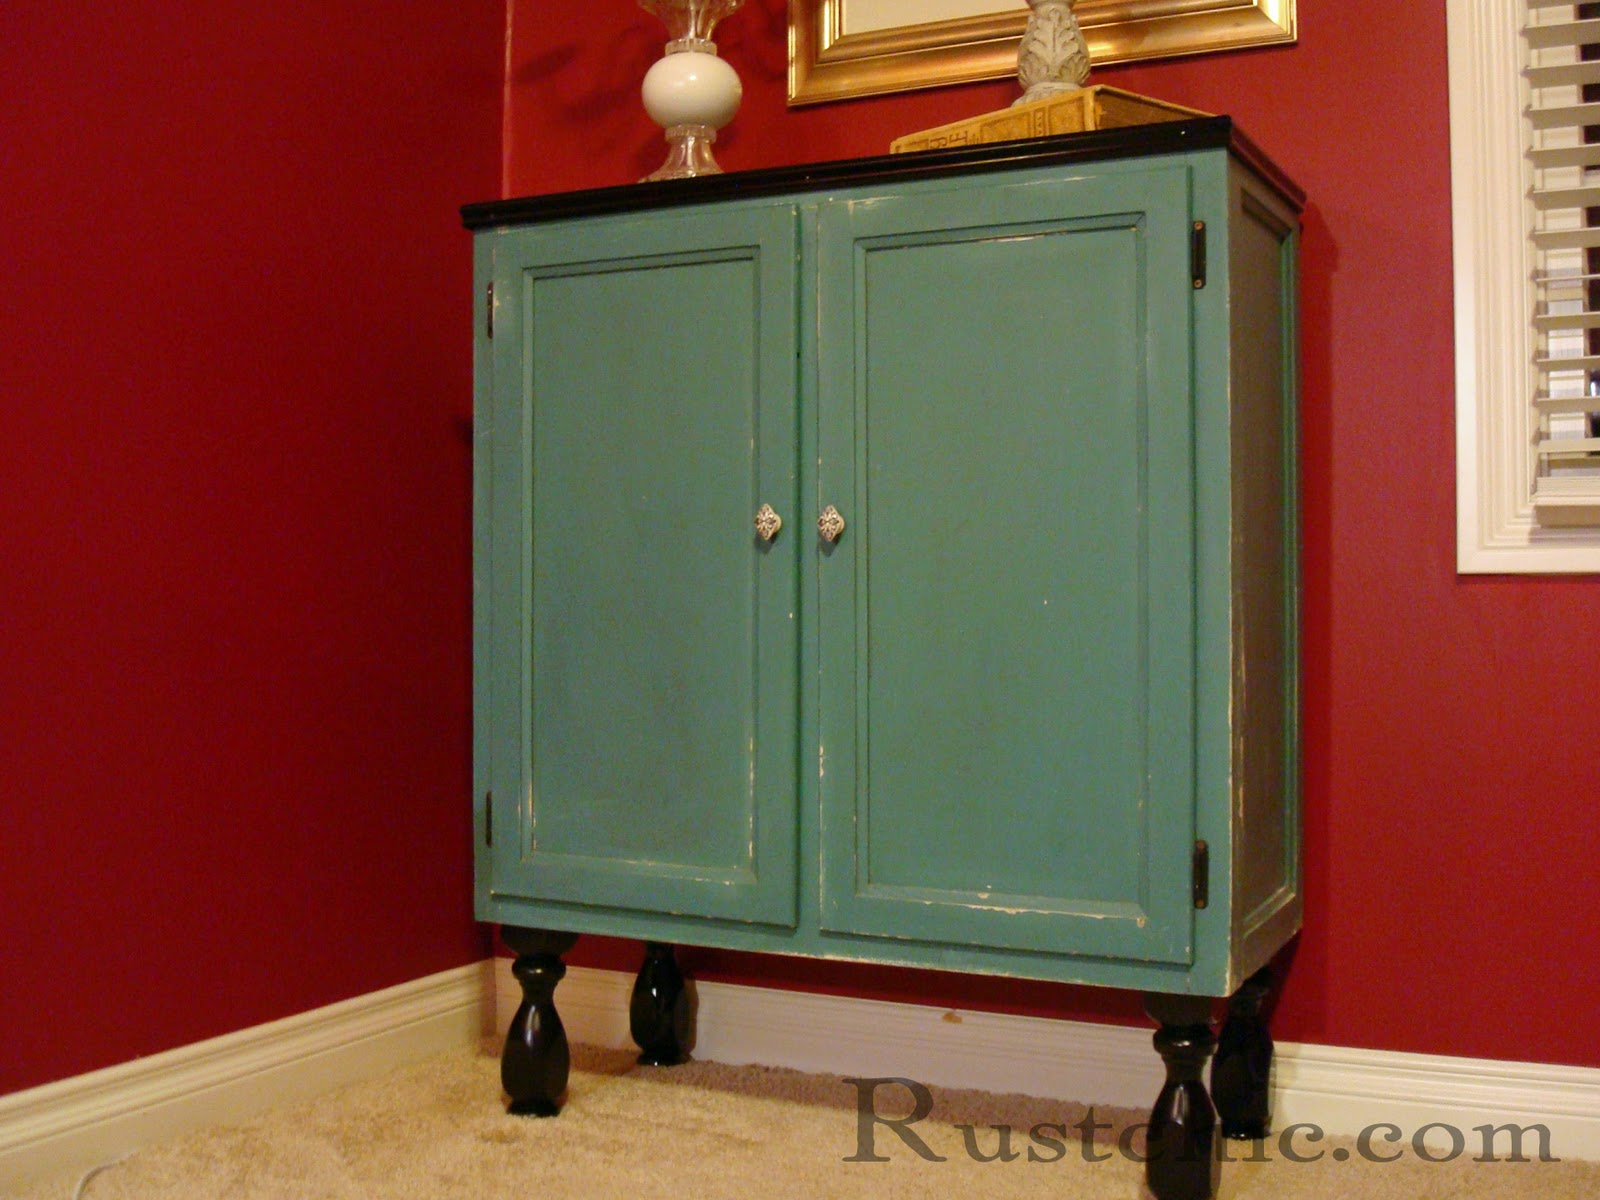 The Legs Were Removed From An Old Coffee Table And Painted Black Before  Being Securely Screwed To The Bottom. A Small Piece Of Crown Trim Painted  Black Was ...